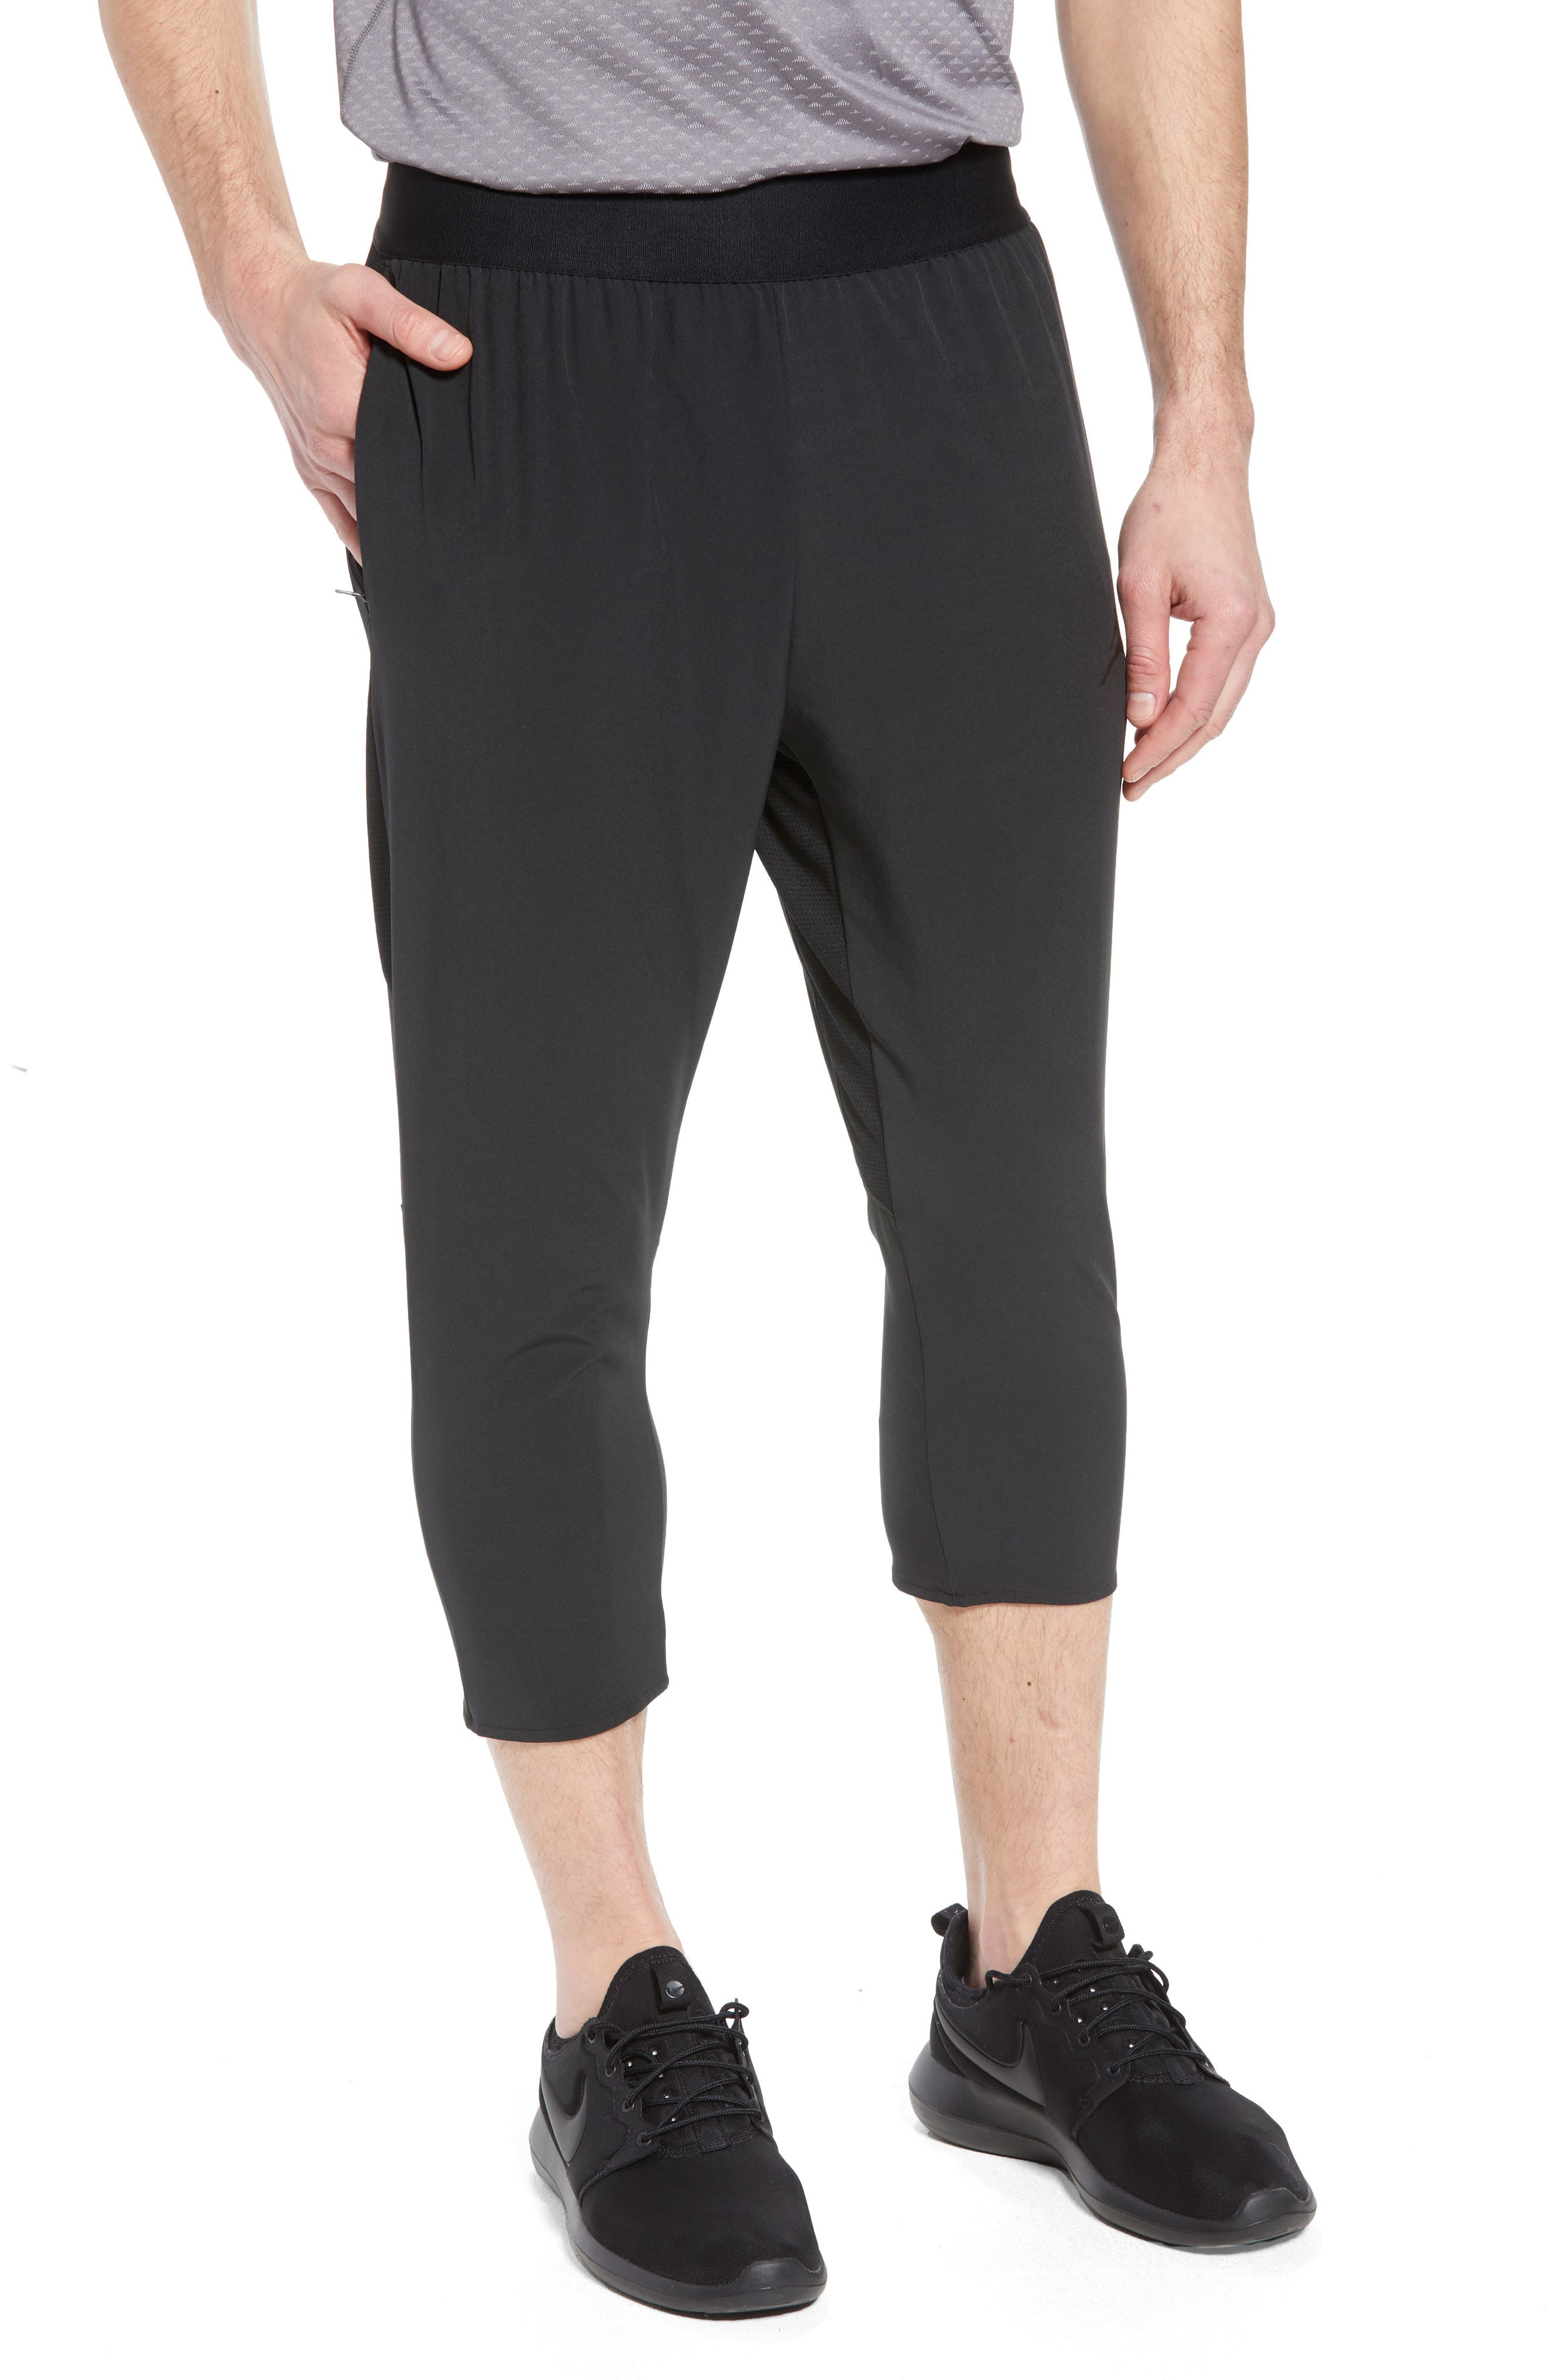 Ult Flight Pants,                         Main,                         color, Black/ Black